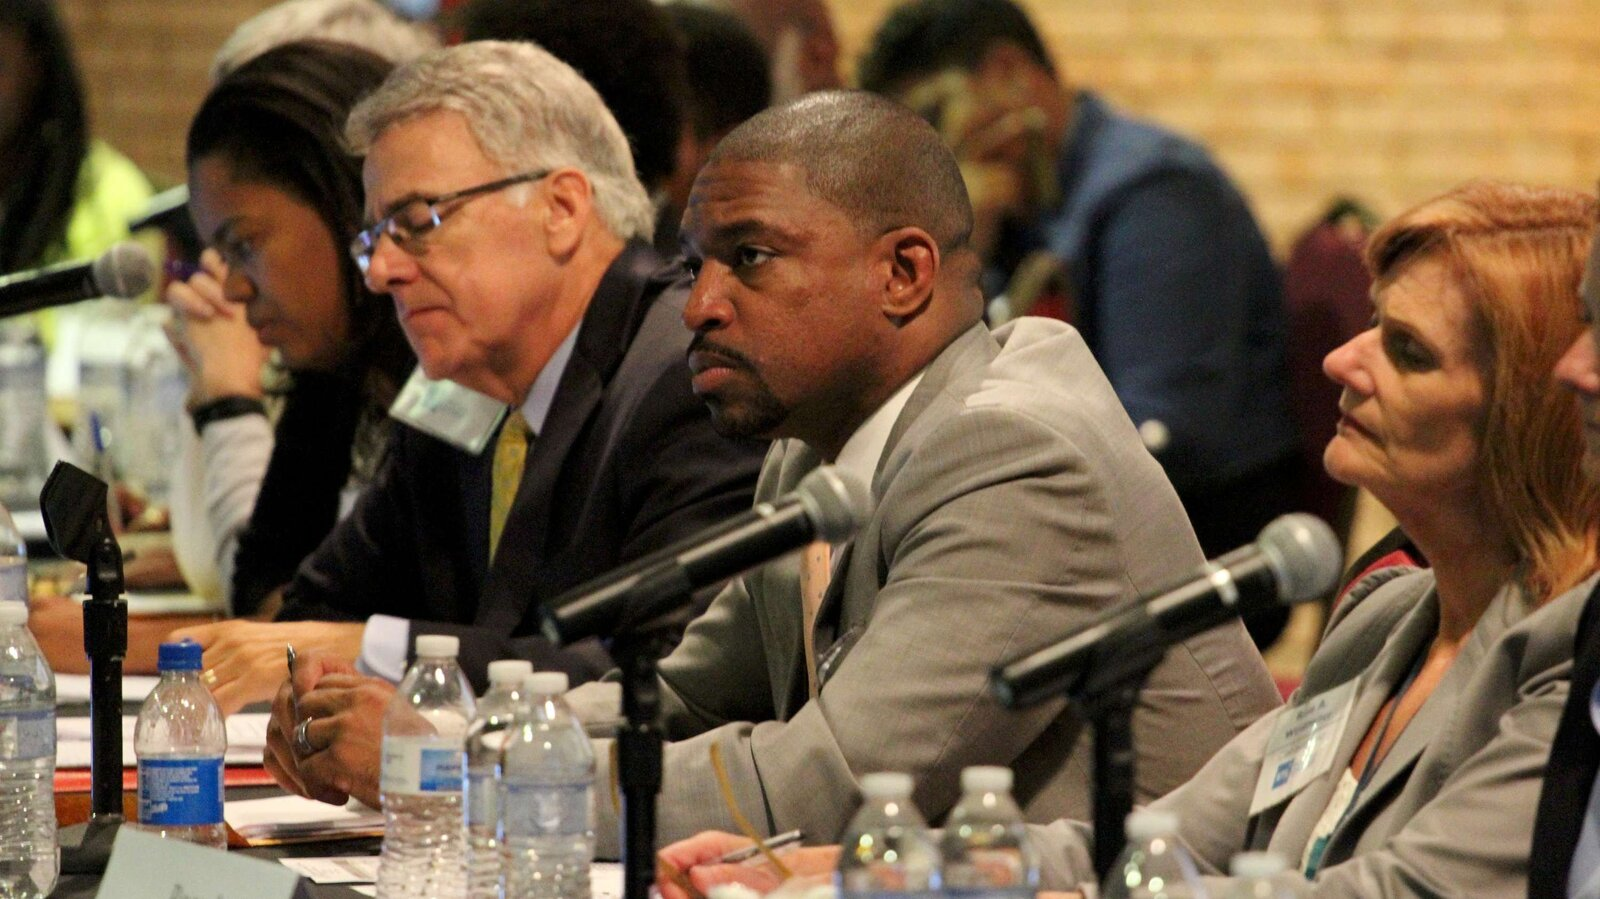 Members of the Ferguson Commission, including co-chairman Starsky Wilson, second from right, listen at a recent hearing of the Ferguson Commission. After months of deliberation, the commission is releasing a report laying bare racial and economic inequalities in the St. Louis region, and calling for change.